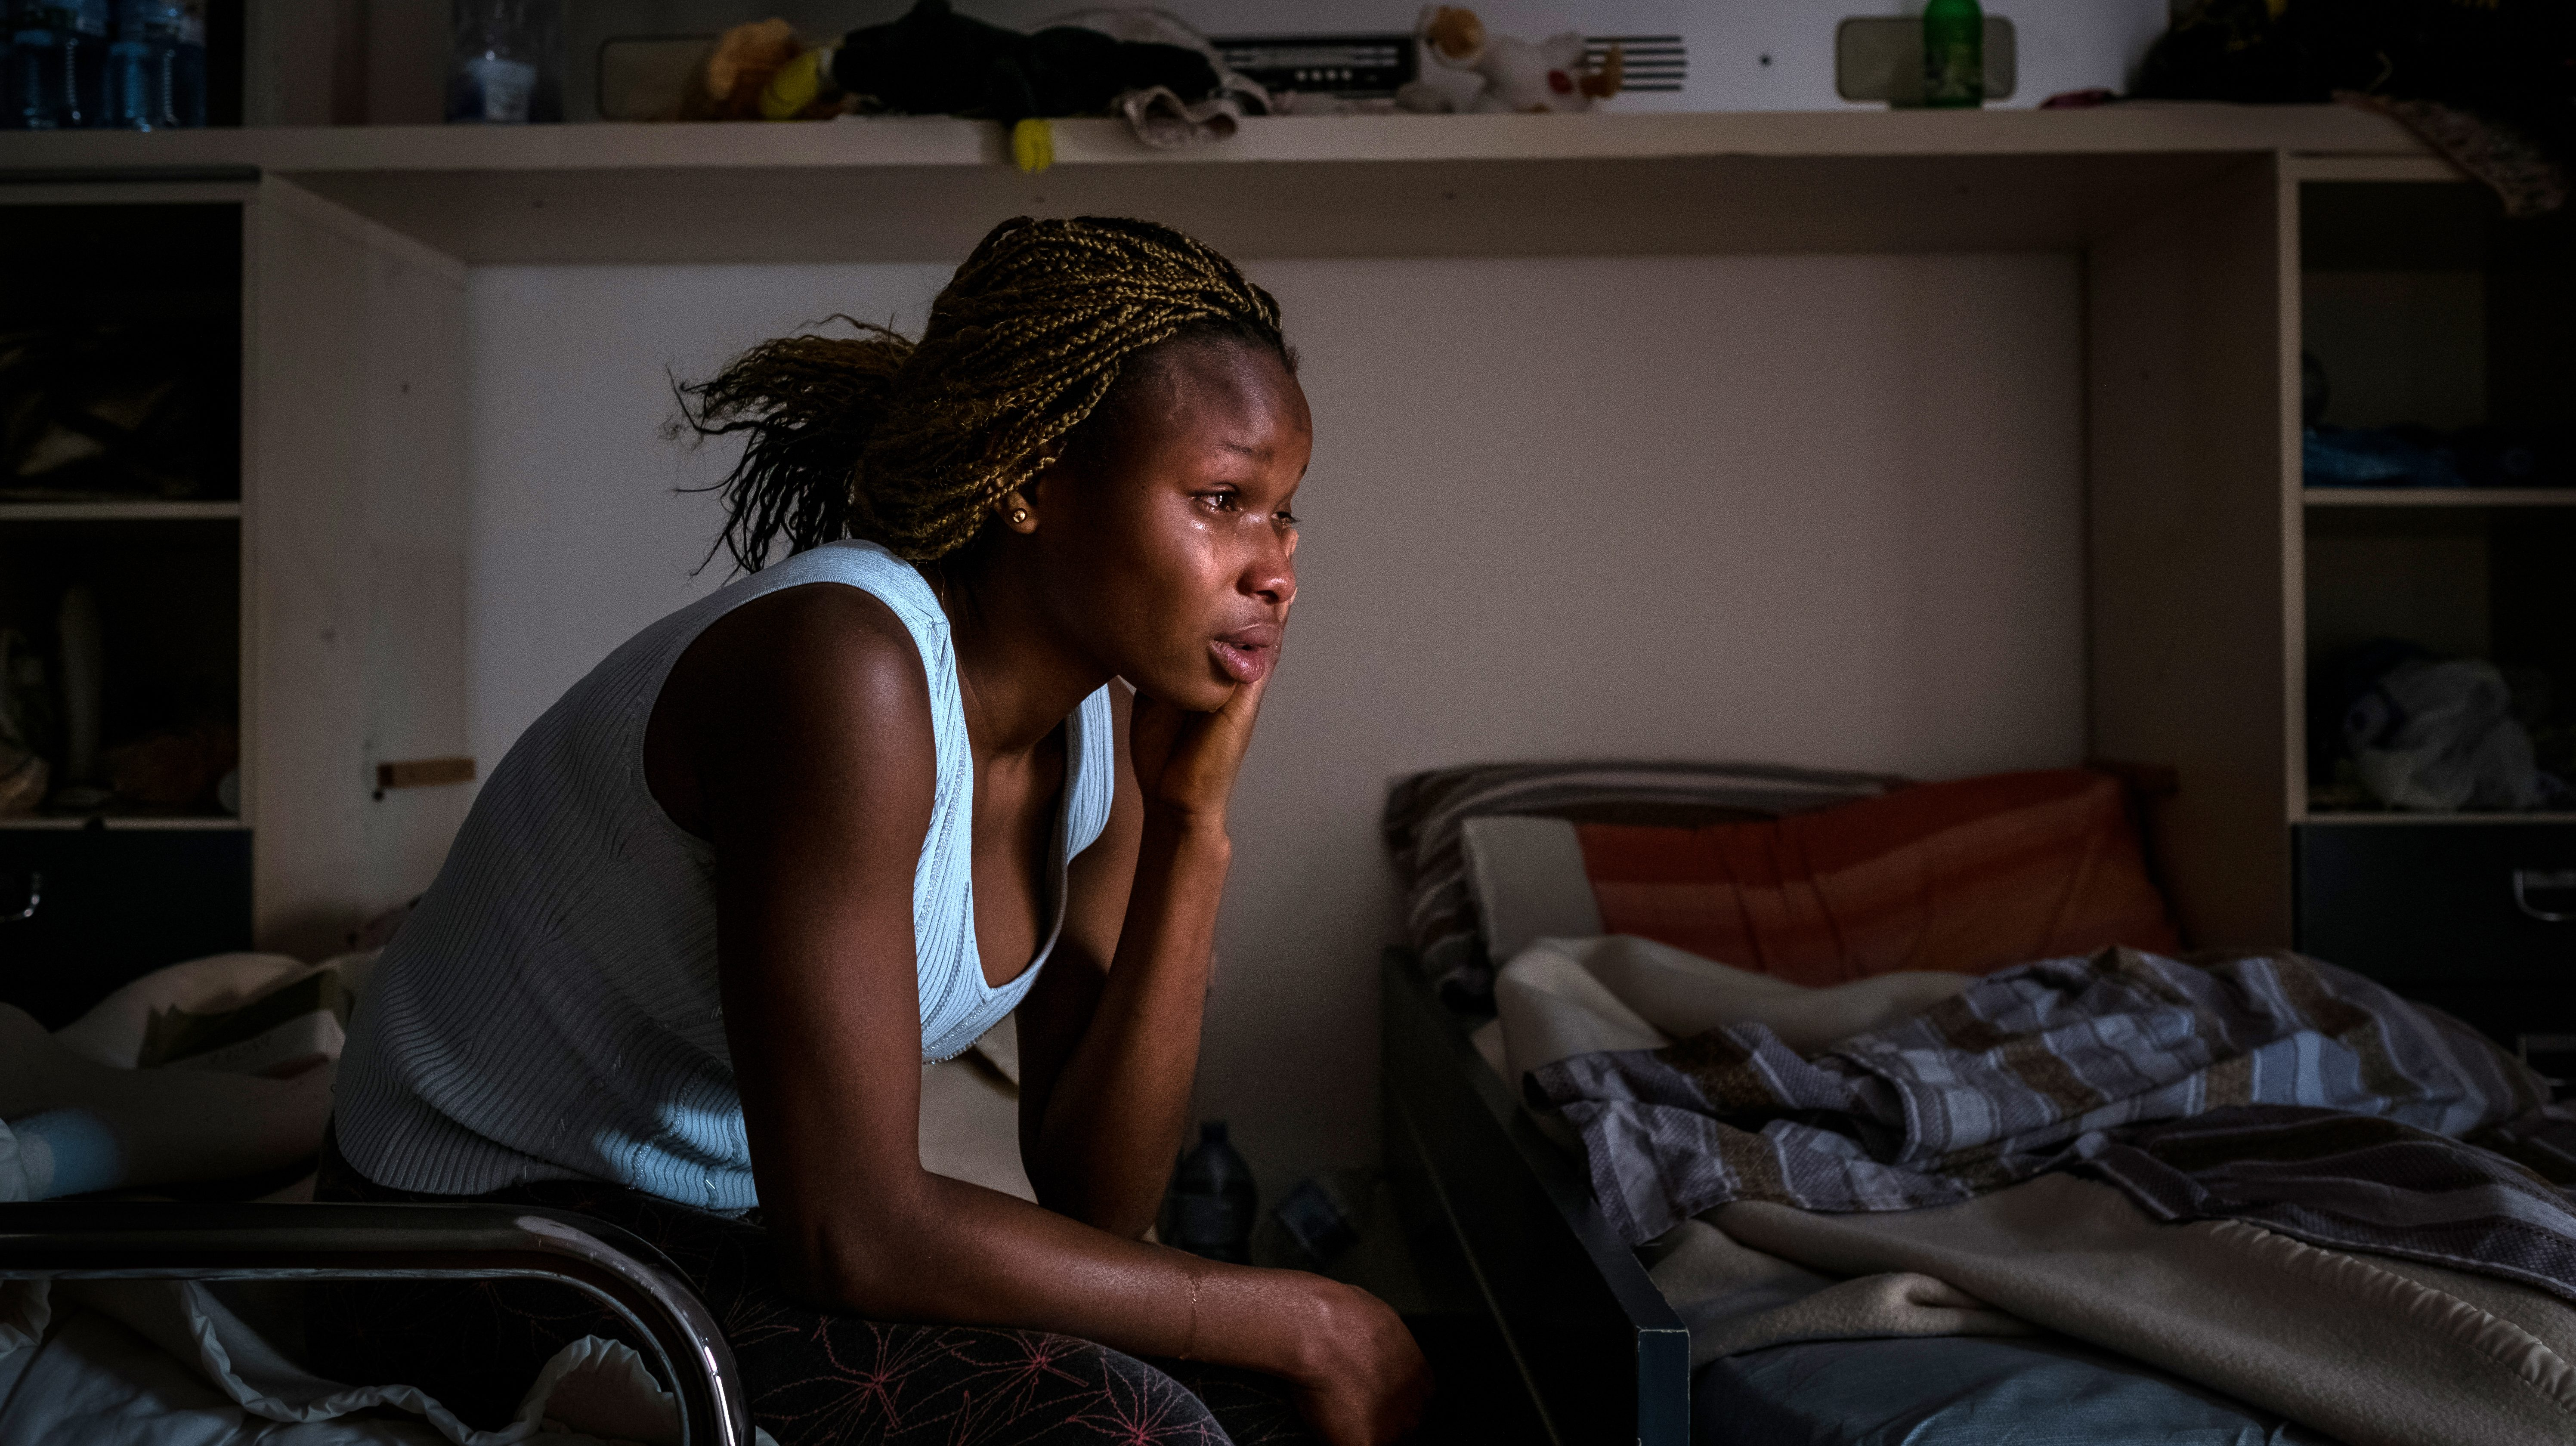 """Mary, 18, from Benin City, Nigeria, at a safe house for victims of sex trafficking run by the Penelope association on the outskirts of Taormina, Sicily, Italy on April 27, 2017. When she was seventeen, Mary escaped a life with no prospects in Nigeria to work in Italy, but was deceived by traffickers into becoming a prostitute. On her journey she was raped by the trafficker, and on arrival in Italy she confessed that knew she was going to be used in the sex trade, giving authorities the opportunity to extract her from the ring.  """"There is no hope in Nigeria,"""" Mary says, """"I suffered a lot there, I don't have anyone to help me. I couldn't go to school. My father is dead to me, I have no siblings, so I had to work as a house girl looking after a woman's babies and cleaning her house. I was so frustrated and didn't know what to do, and my friend said I should go to Europe. I don't have anyone to rely on in Nigeria, and I decided to go.""""  """"Though my country is sweet and I love it, I suffered too much. There was no future there for me. A woman said she would help me and send me to Europe and she introduced me to a man, his name is Ben, who she said could help me. Ben said he knew people who had restaurants to put me to work in. For the moment, he said he would pay my expenses.   """"The next day, the man called me to his house."""" Mary says. """"There were lots of boys and girls there. He said to all of us, if we made it to Europe, we all had to each pay €25,000. Some people said no, but I said that was okay.""""   """"Then he took us to a place they do juju.""""  Juju is an ancient Nigerian belief system in the occult and through witches, spells are be cast on girls to ensure they fear for their lives should they escape.  """"We had to swear to an old woman –a sorcerer– that we wouldn't run."""" Mary explains.  """"So, on March 17, I left for Libya. That place is very very bad. They treated us so"""